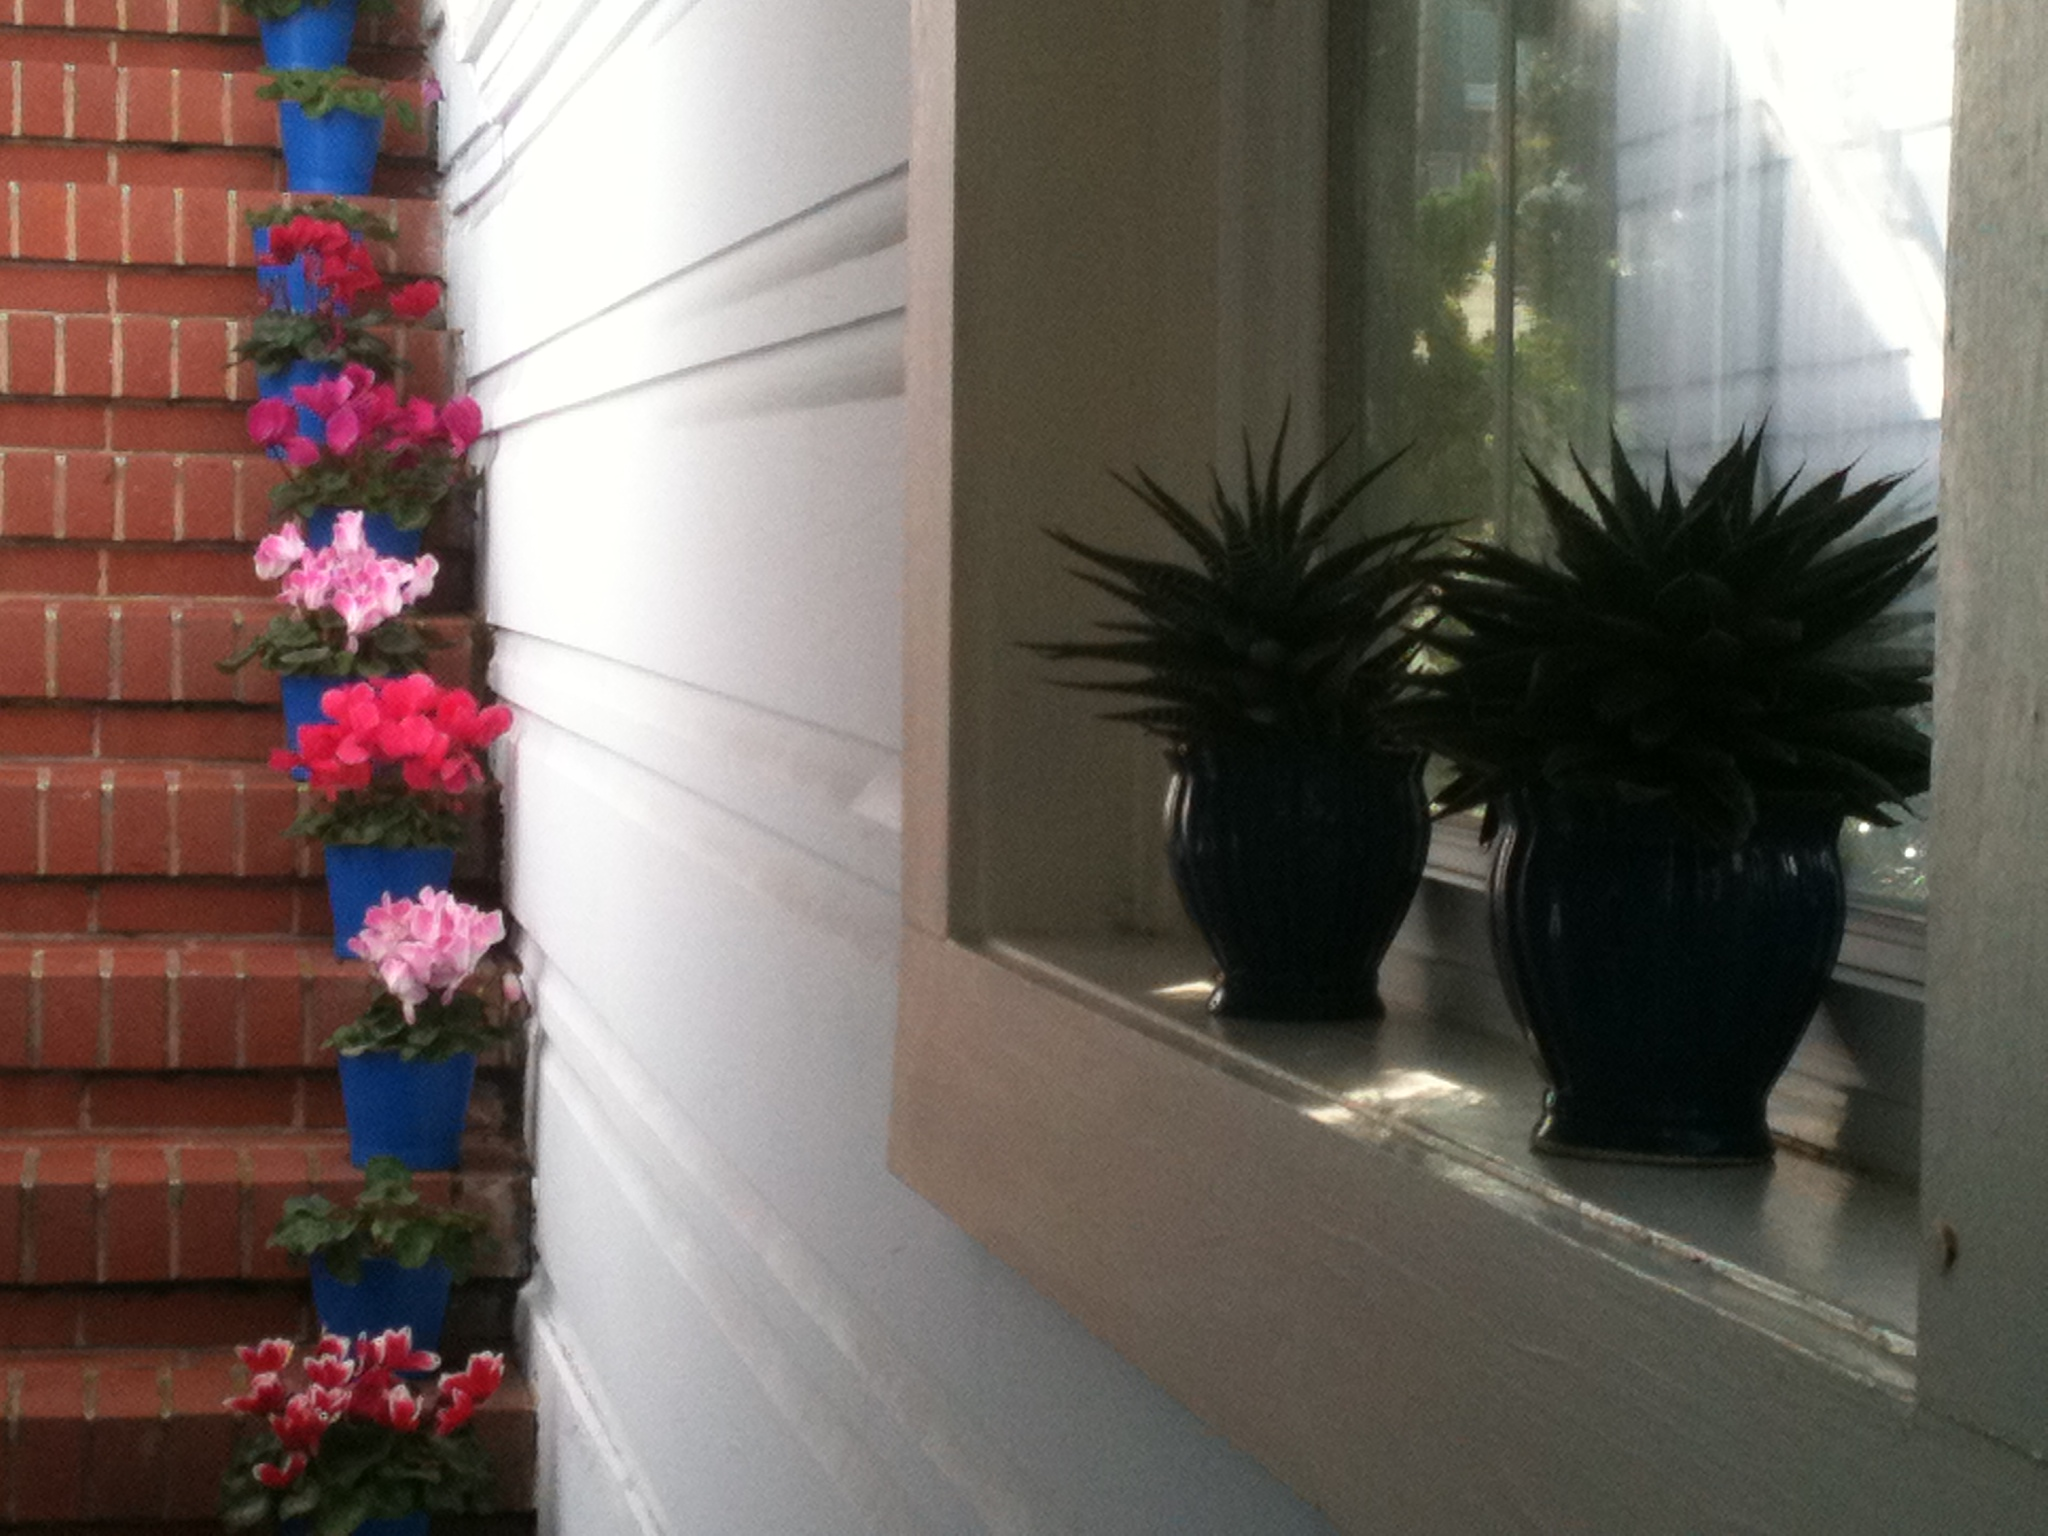 Succulents and Cyclamen blooming on the entry staircase.